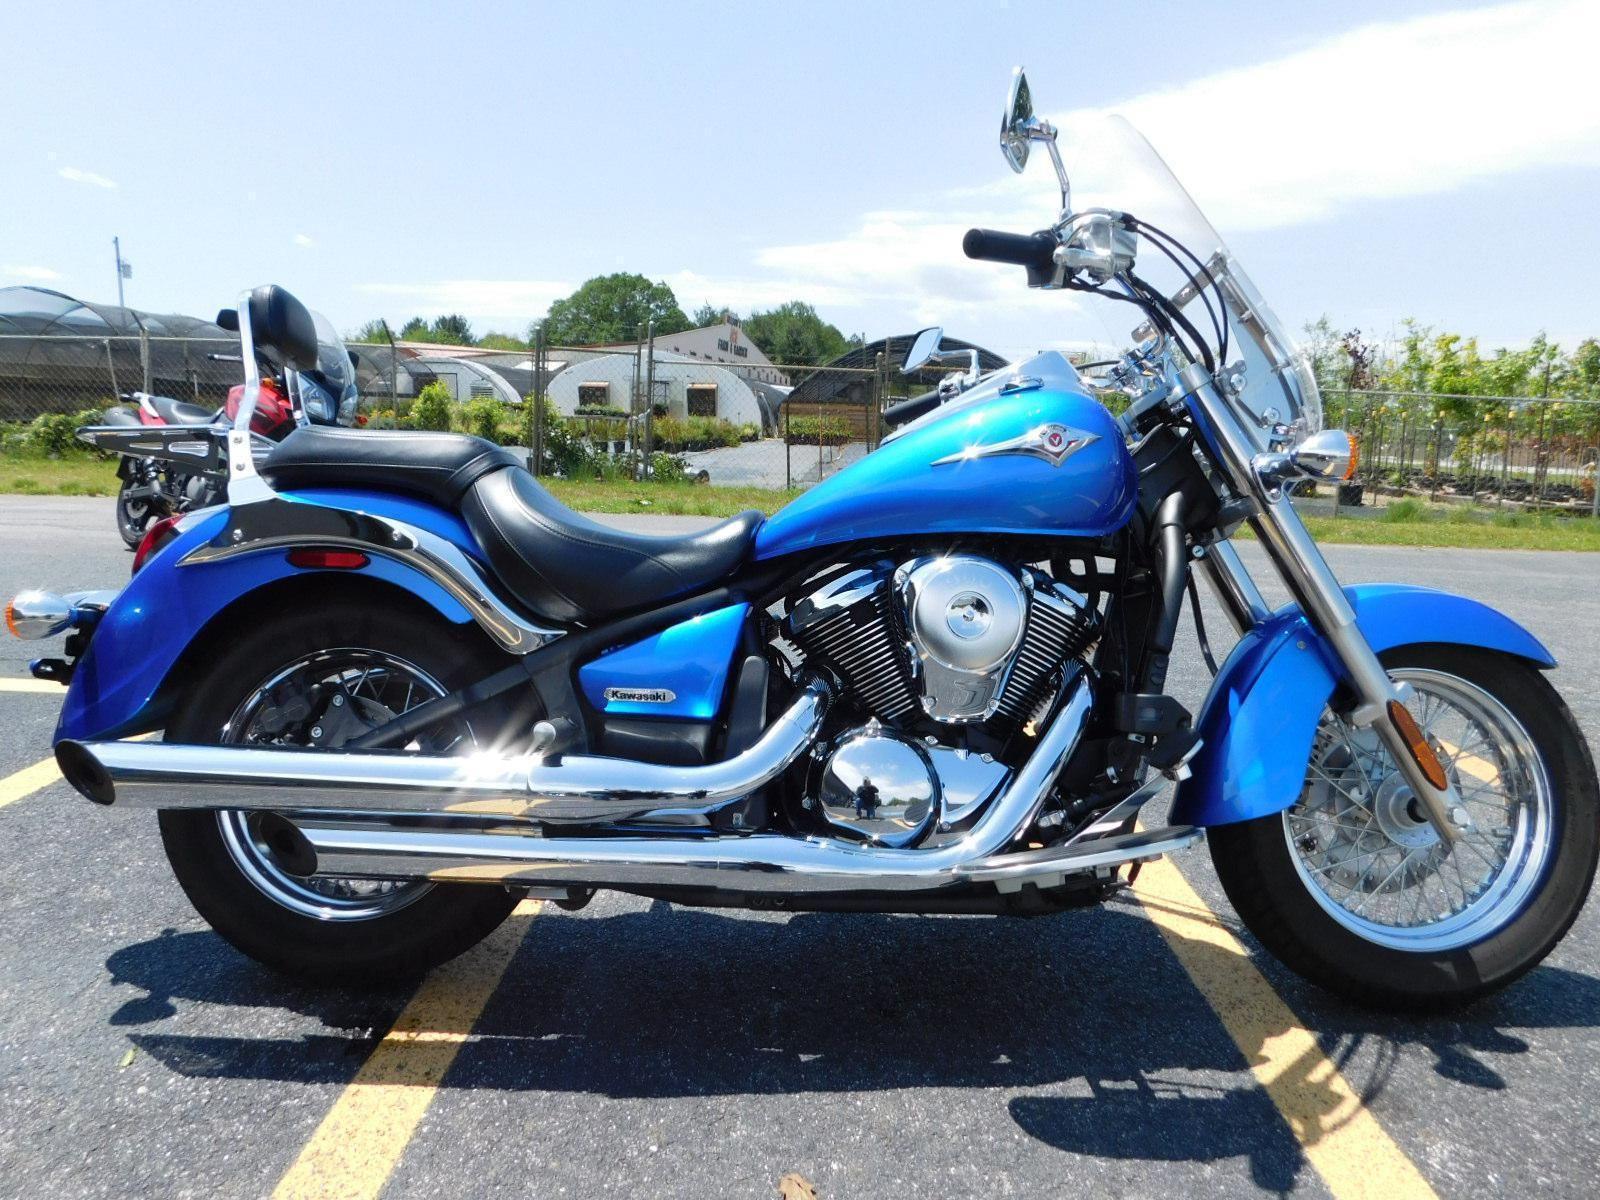 2009 Kawasaki VulcanR 900 Classic For Sale In Blairsville GA